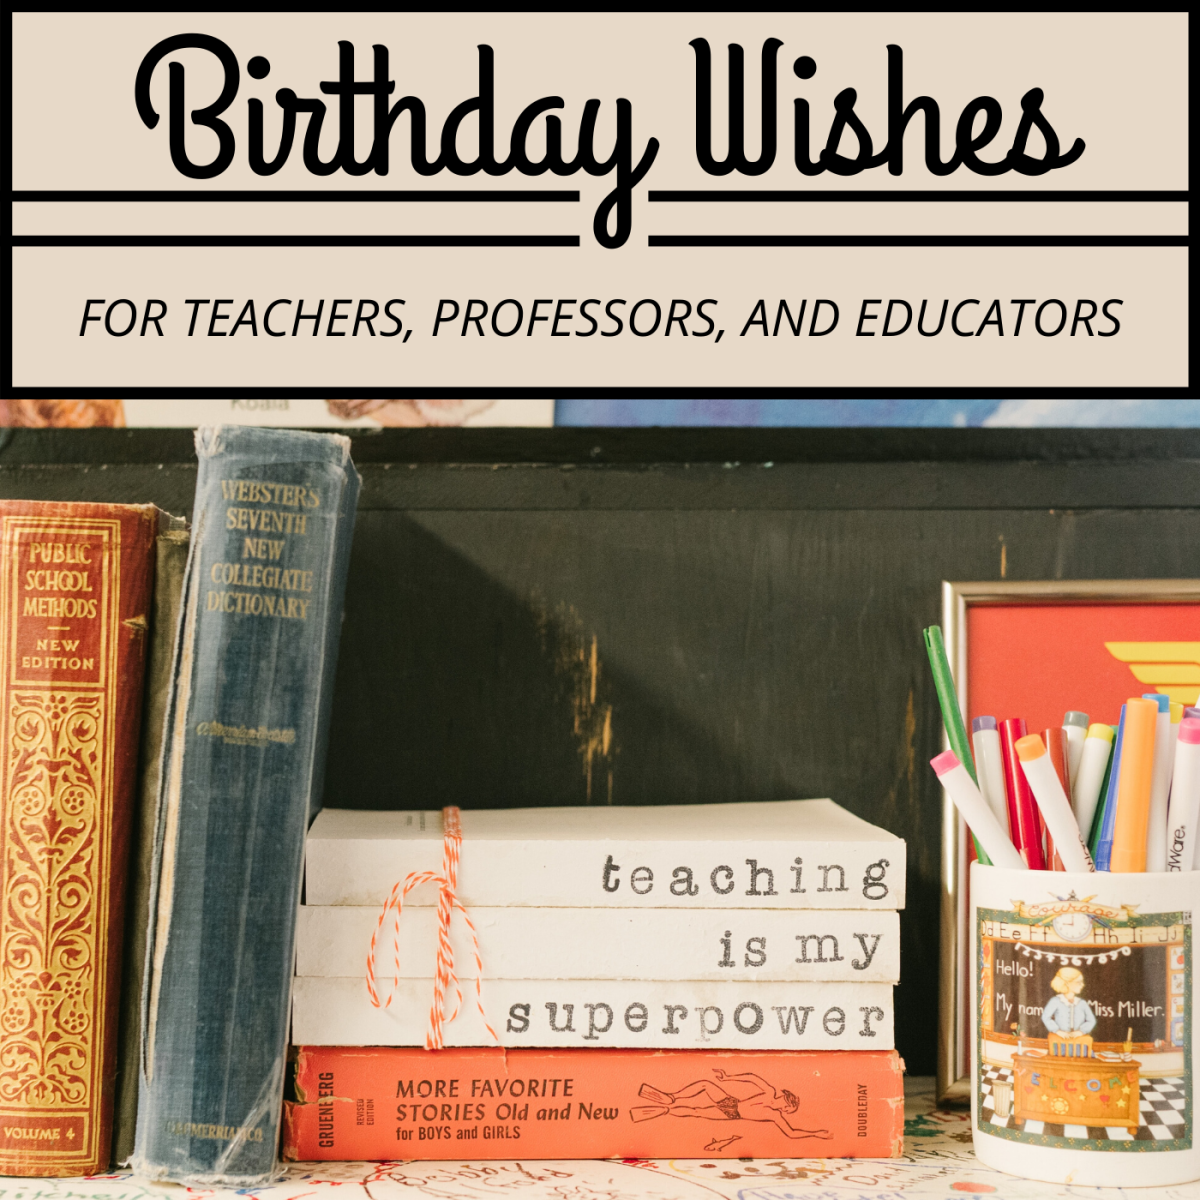 Our teachers give us the tools we need to grow and succeed. Why not let them know how much their work means to us by giving them a birthday card with a thoughtful message?